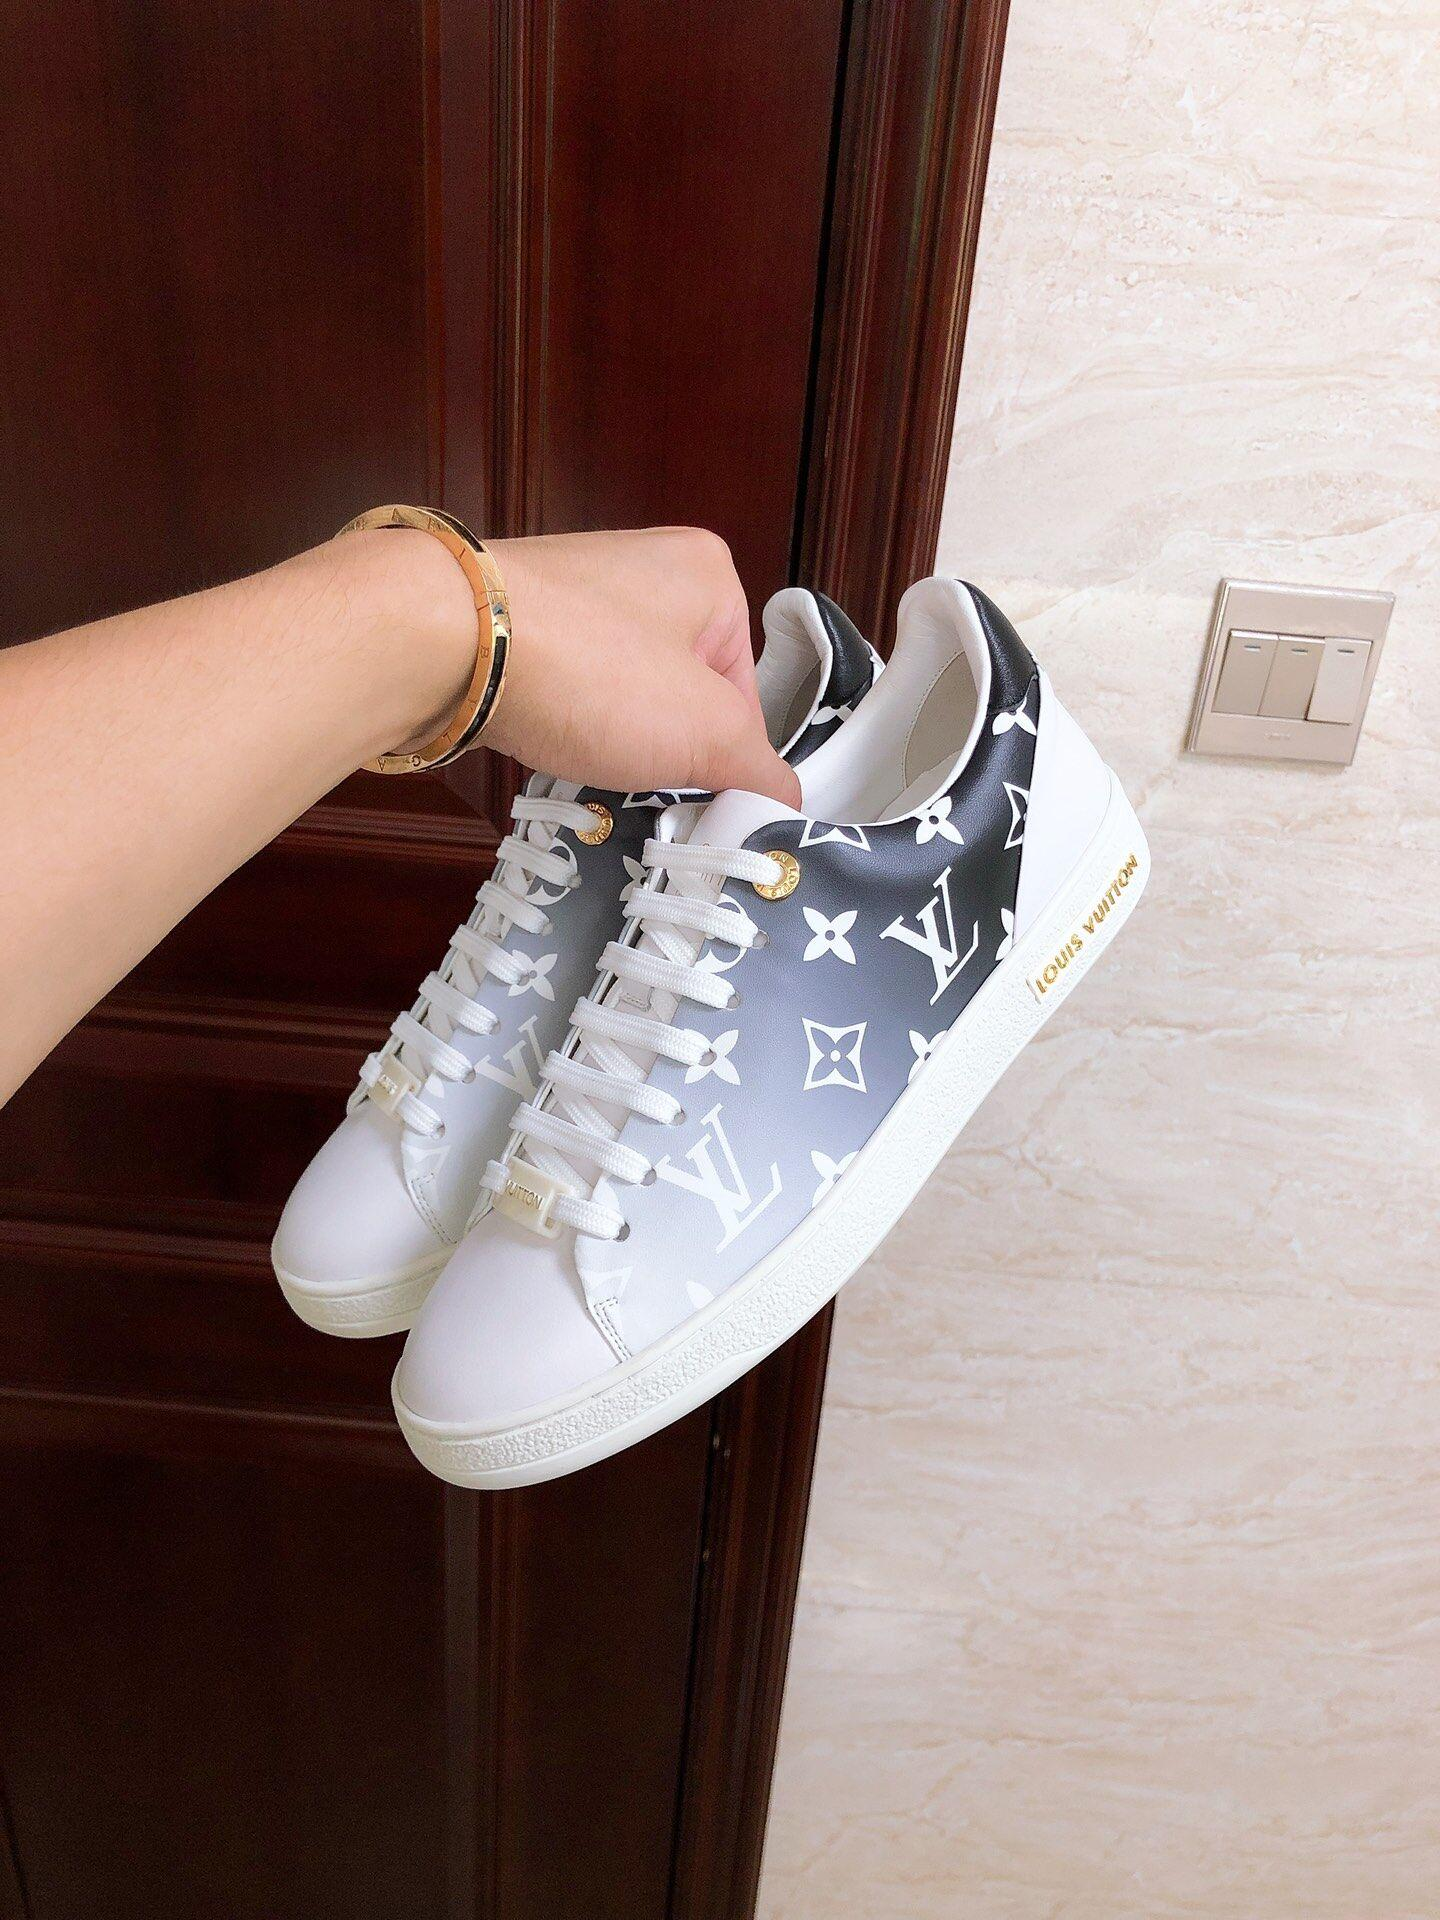 frontrow sneaker    sneaker    women shoes    pink  shoes 1A87CE  15